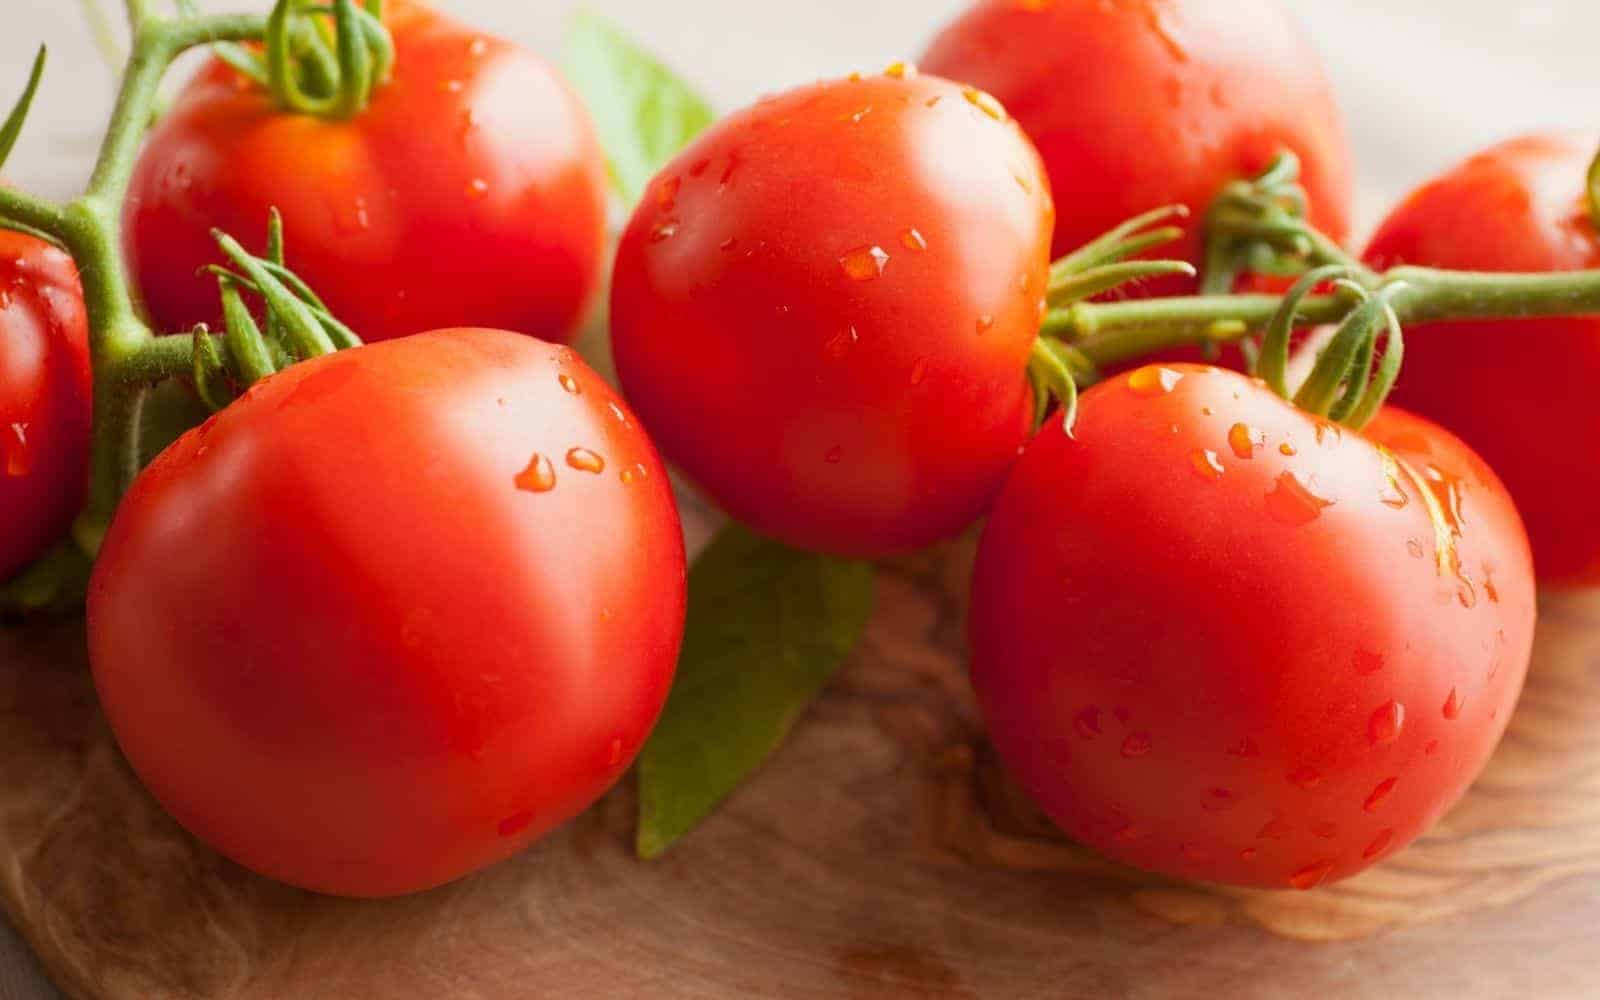 The Early Girl Tomato: A Reliable, Short-Season Favorite Hybrid Variety – Home for the Harvest